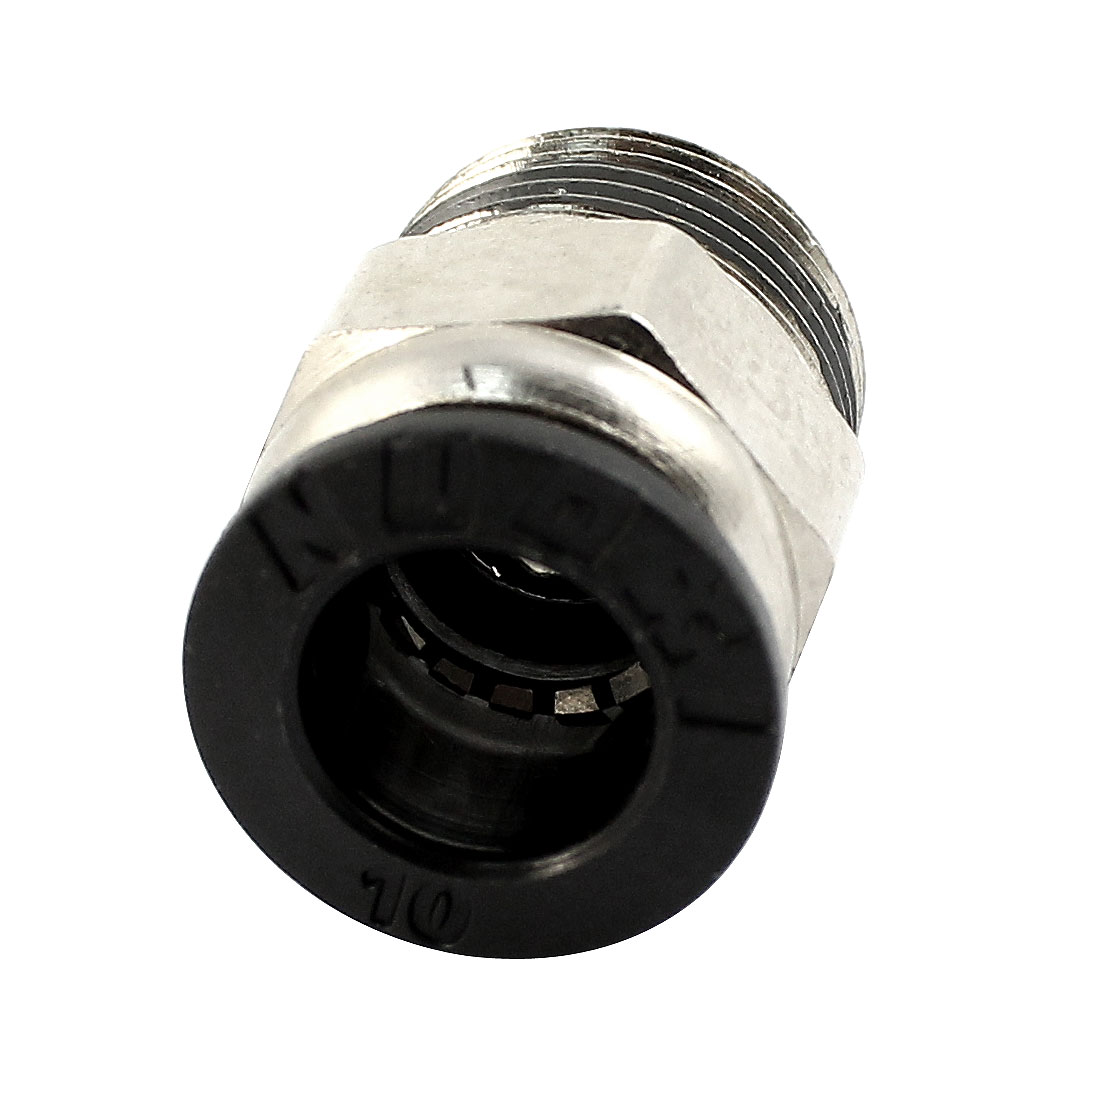 3/8PT Male Threaded to 10mm Push in Tube Silver Tone Metal Straight Air Pneumatic Quick Release Coupler Fitting Connector Joint